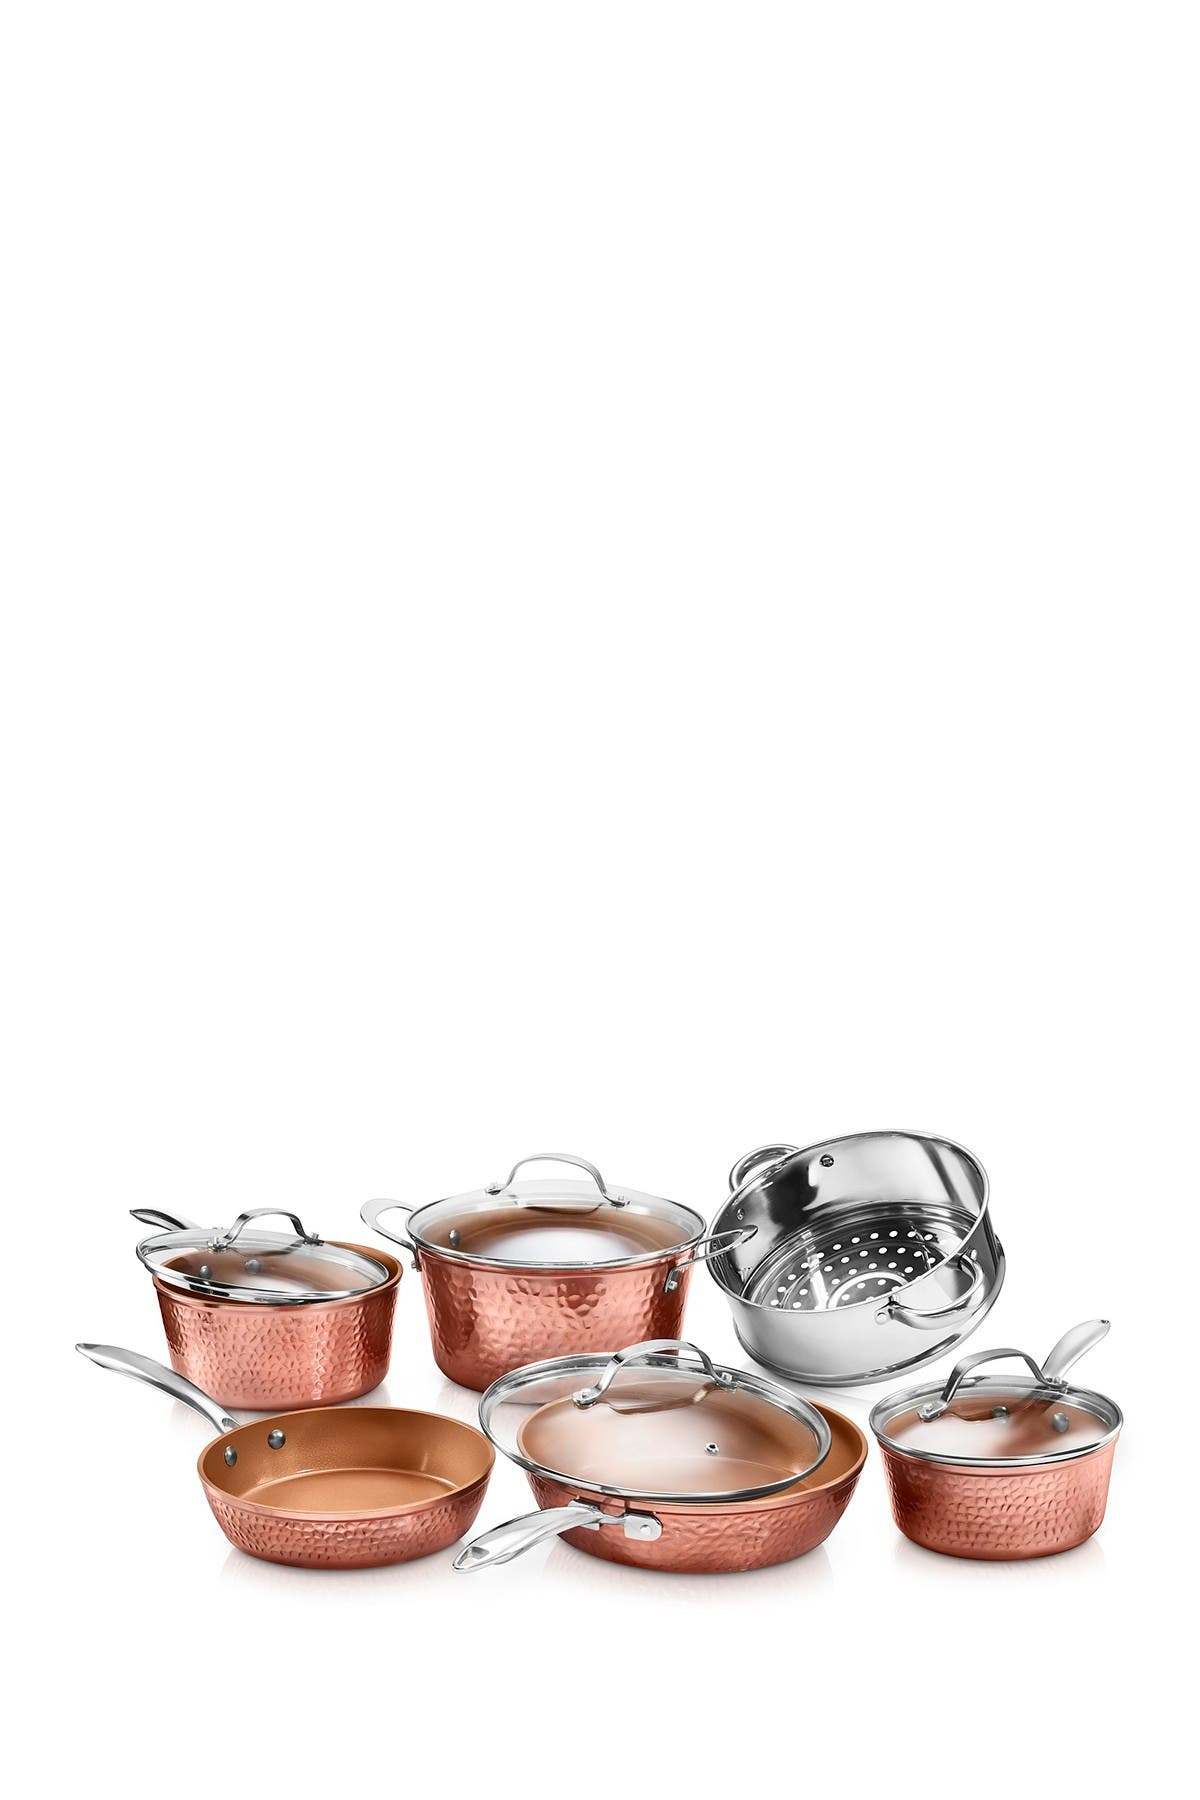 Image of Gotham Steel Hammered Non-Stick 10 Piece Cookware Set